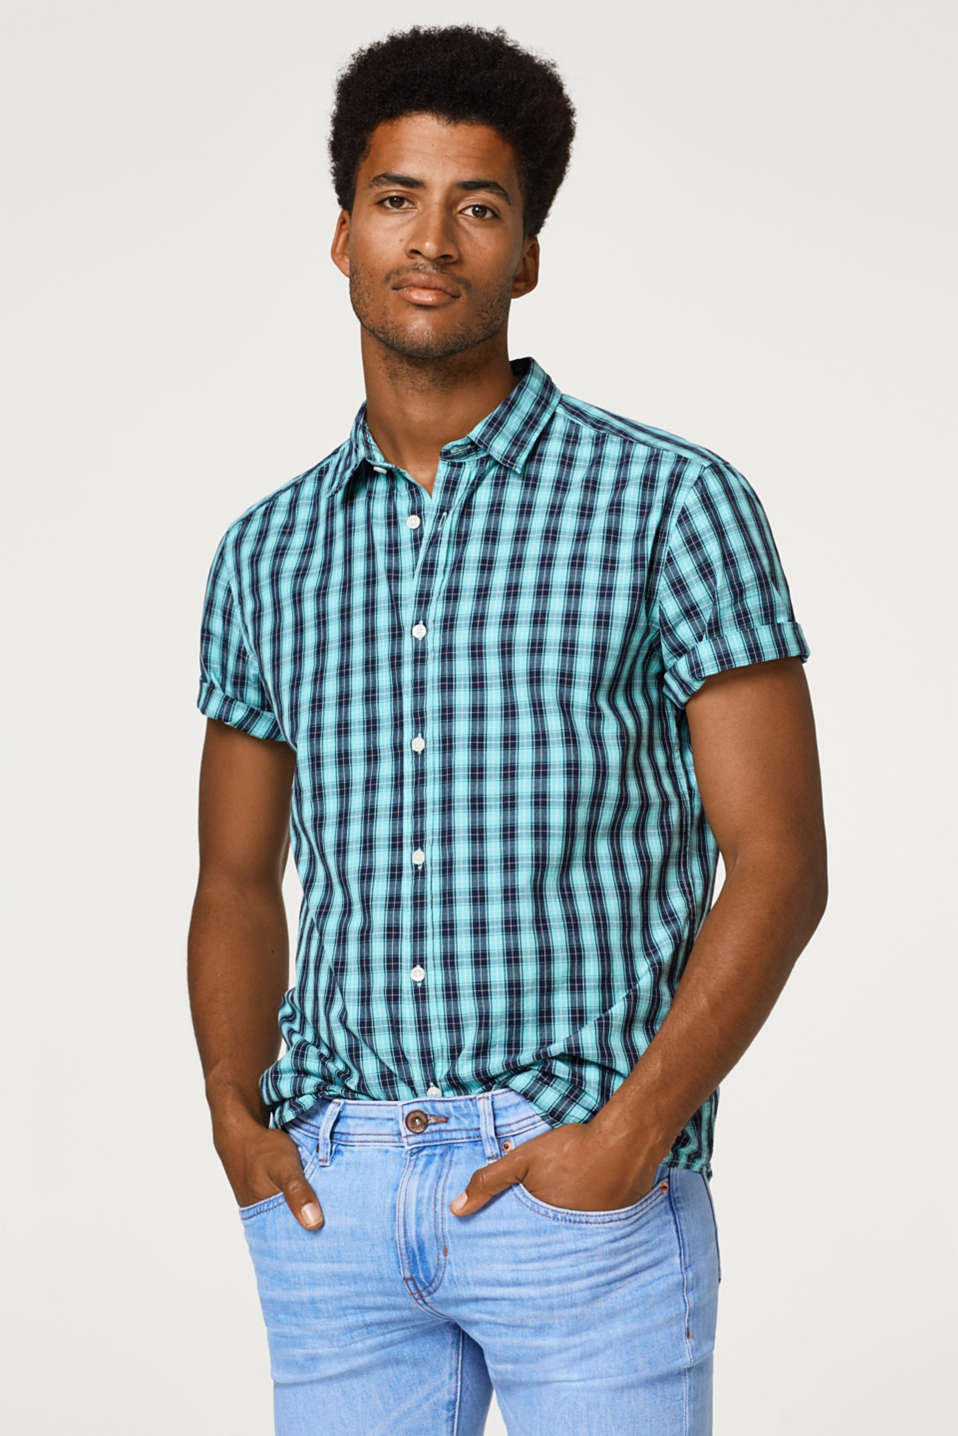 Esprit - Short sleeve shirt with a check pattern, 100% cotton